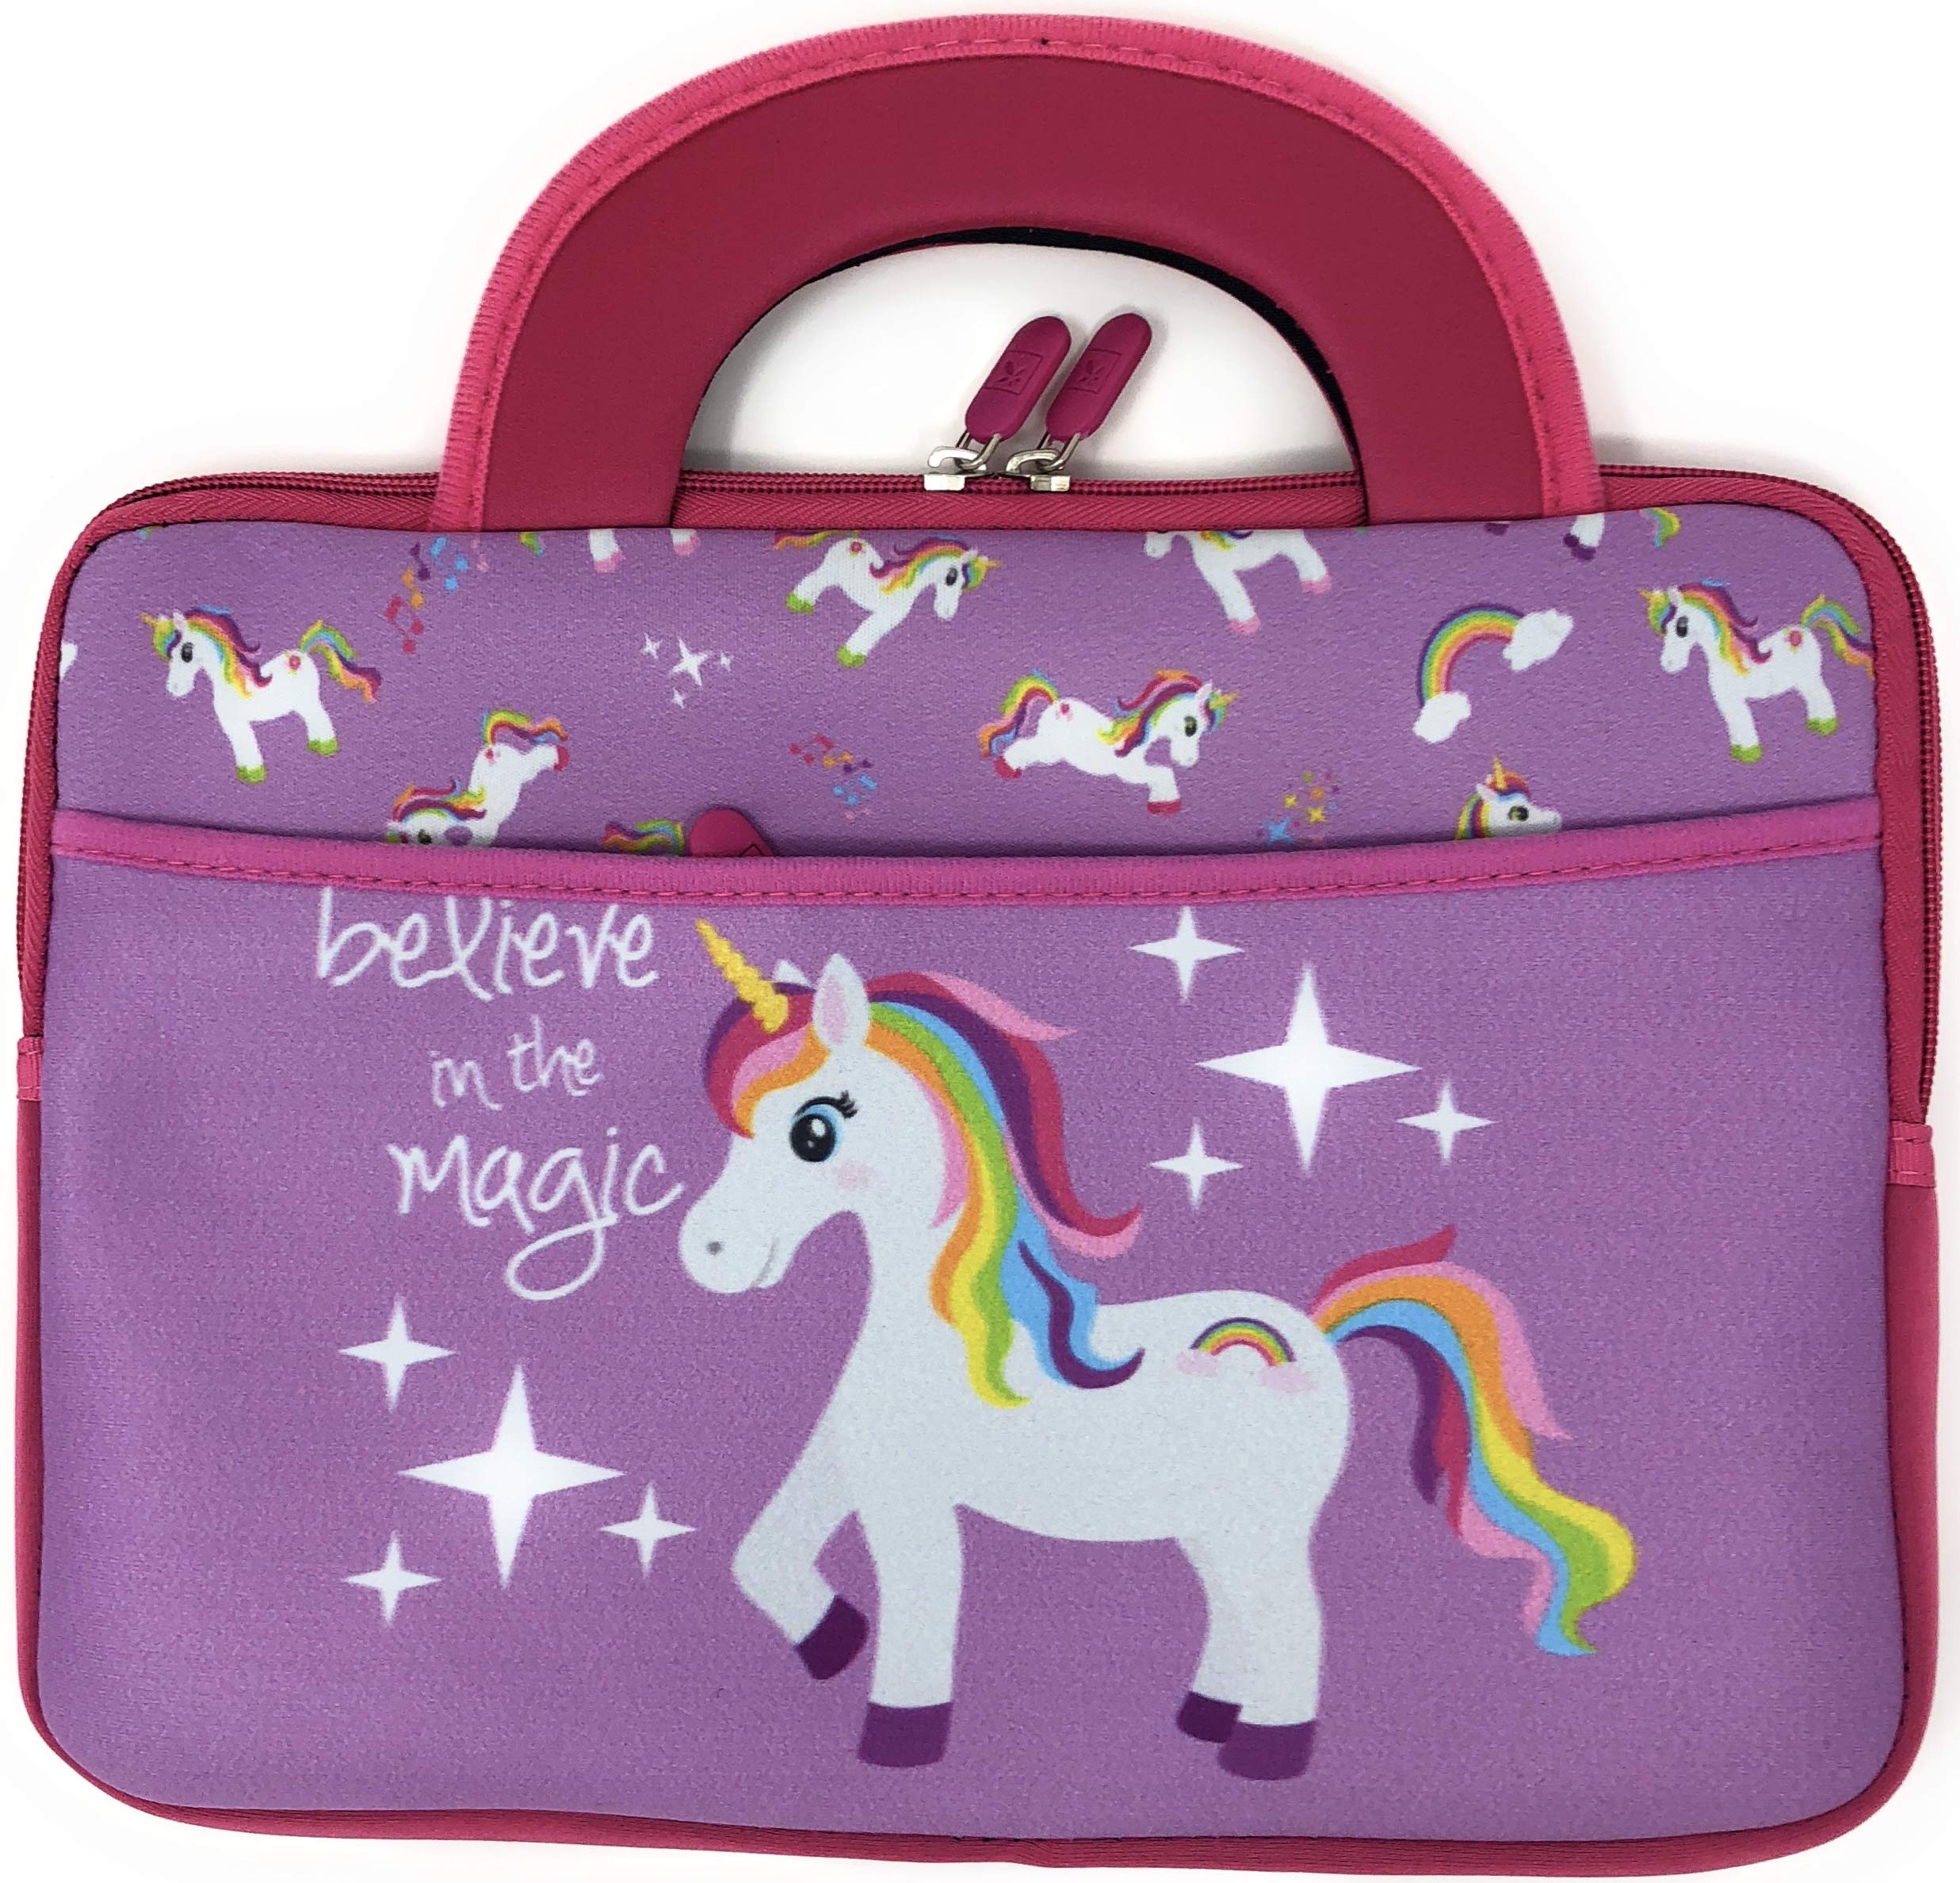 Kids tablet travel Unicorn Activity Bag Boy Girl 10 Inch Universal compatible Fire HD 8 Kids Edition Sleeve Handles Tote Neoprene Portfolio Case pocket Fire 7 (Unicorn)